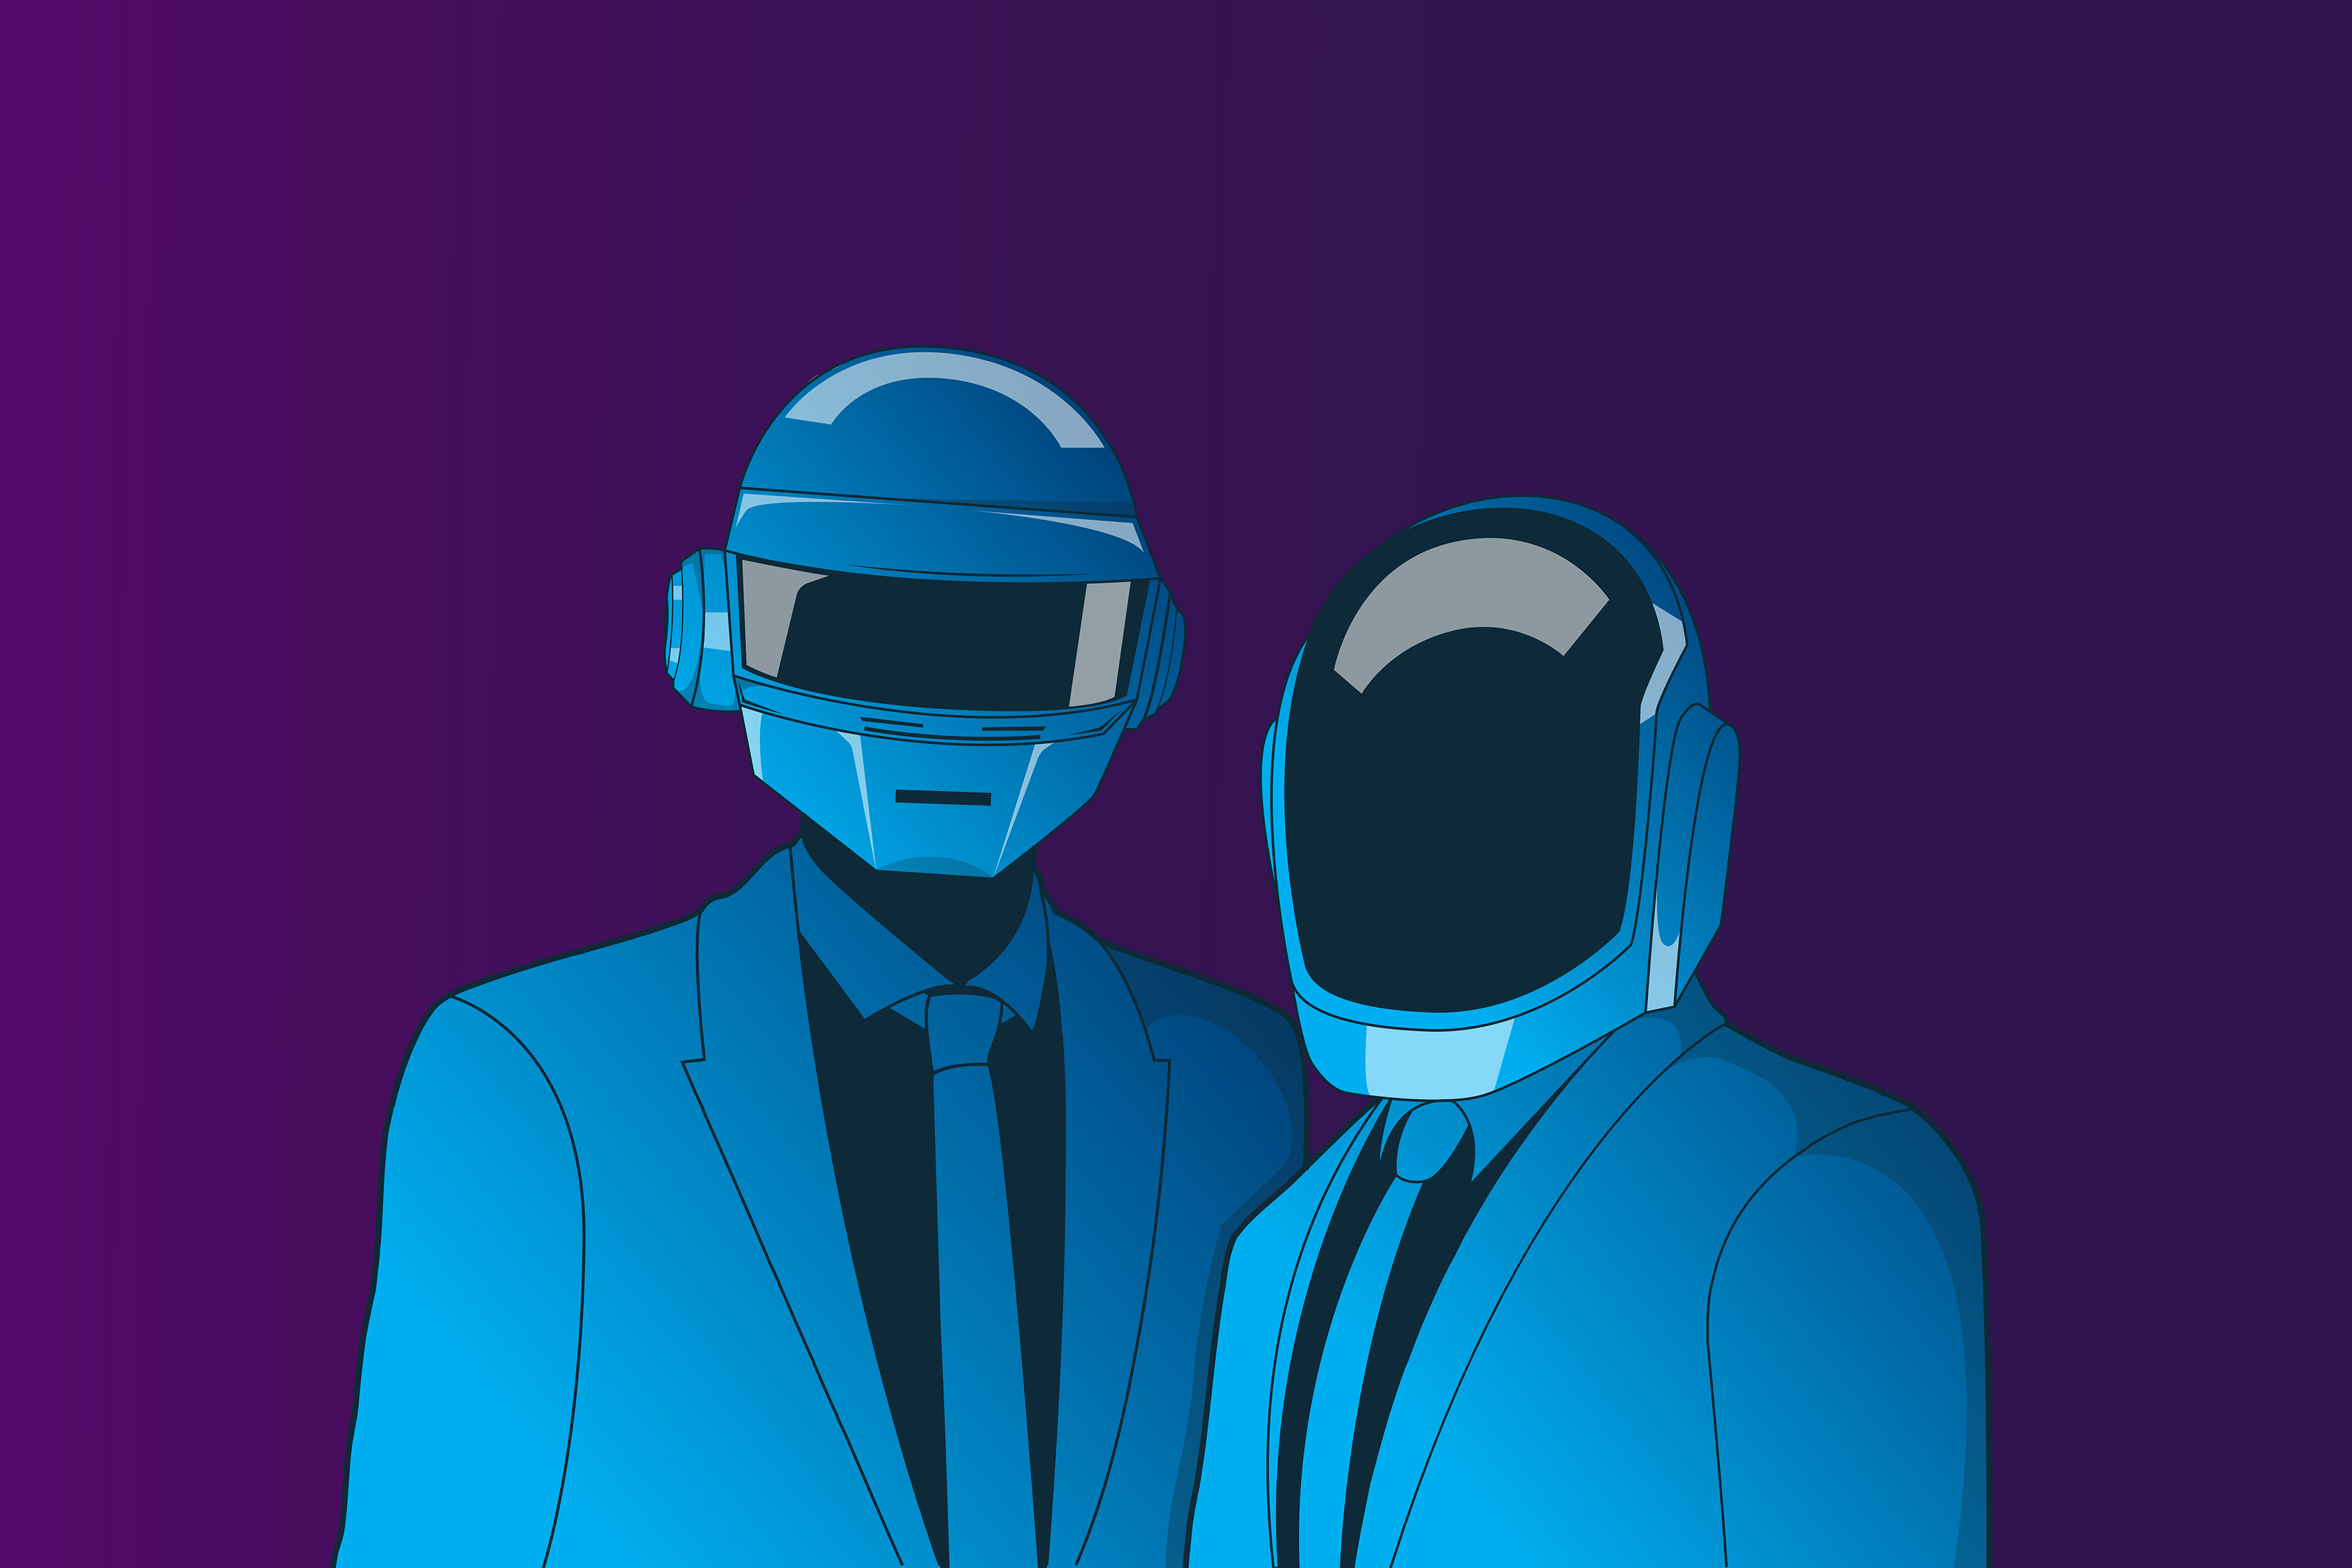 Daft Punk Art 4k, HD Music, 4k Wallpapers, Images ...